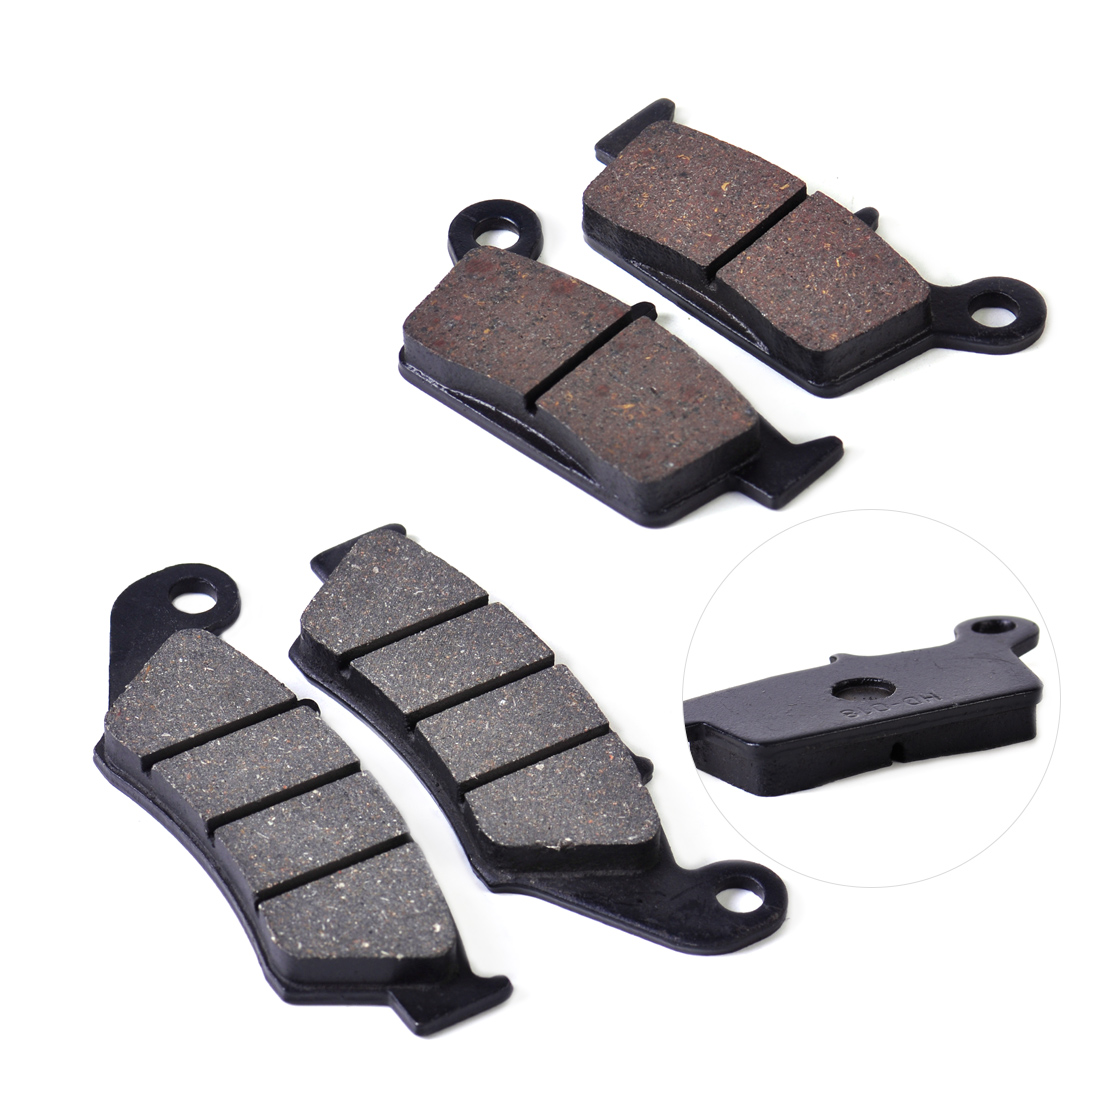 DWCX 2pcs Motorcycle Front Rear Brake Pads for Suzuki RM125 RM250 Honda CR125R XR250R Yamaha YZ125 Kawasaki KX500 for Suzuki 10 pieces 6mm motorcycle fairing body screws for honda cr 250 f4i vfr800 cbr1100xx suzuki bandit 600 gsr 750 yamaha tmax 530